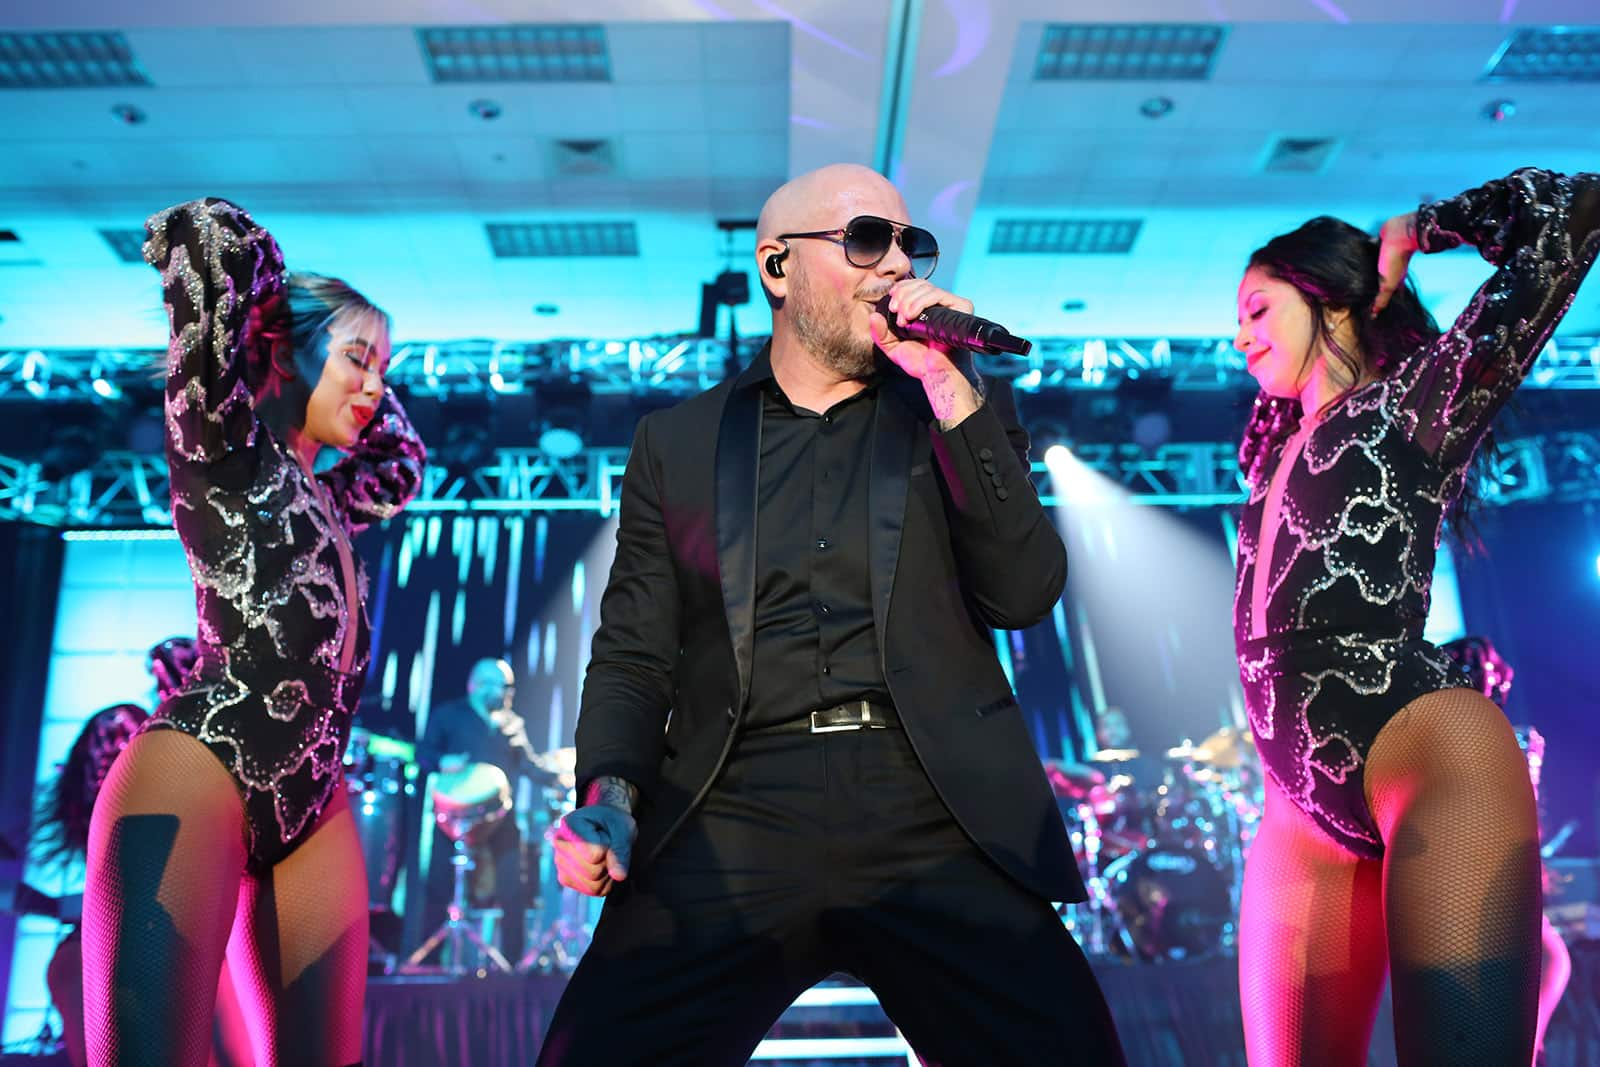 Pitbull Performs at CruiseWorld 2018 Event Hosted by Norwegian Cruise Line